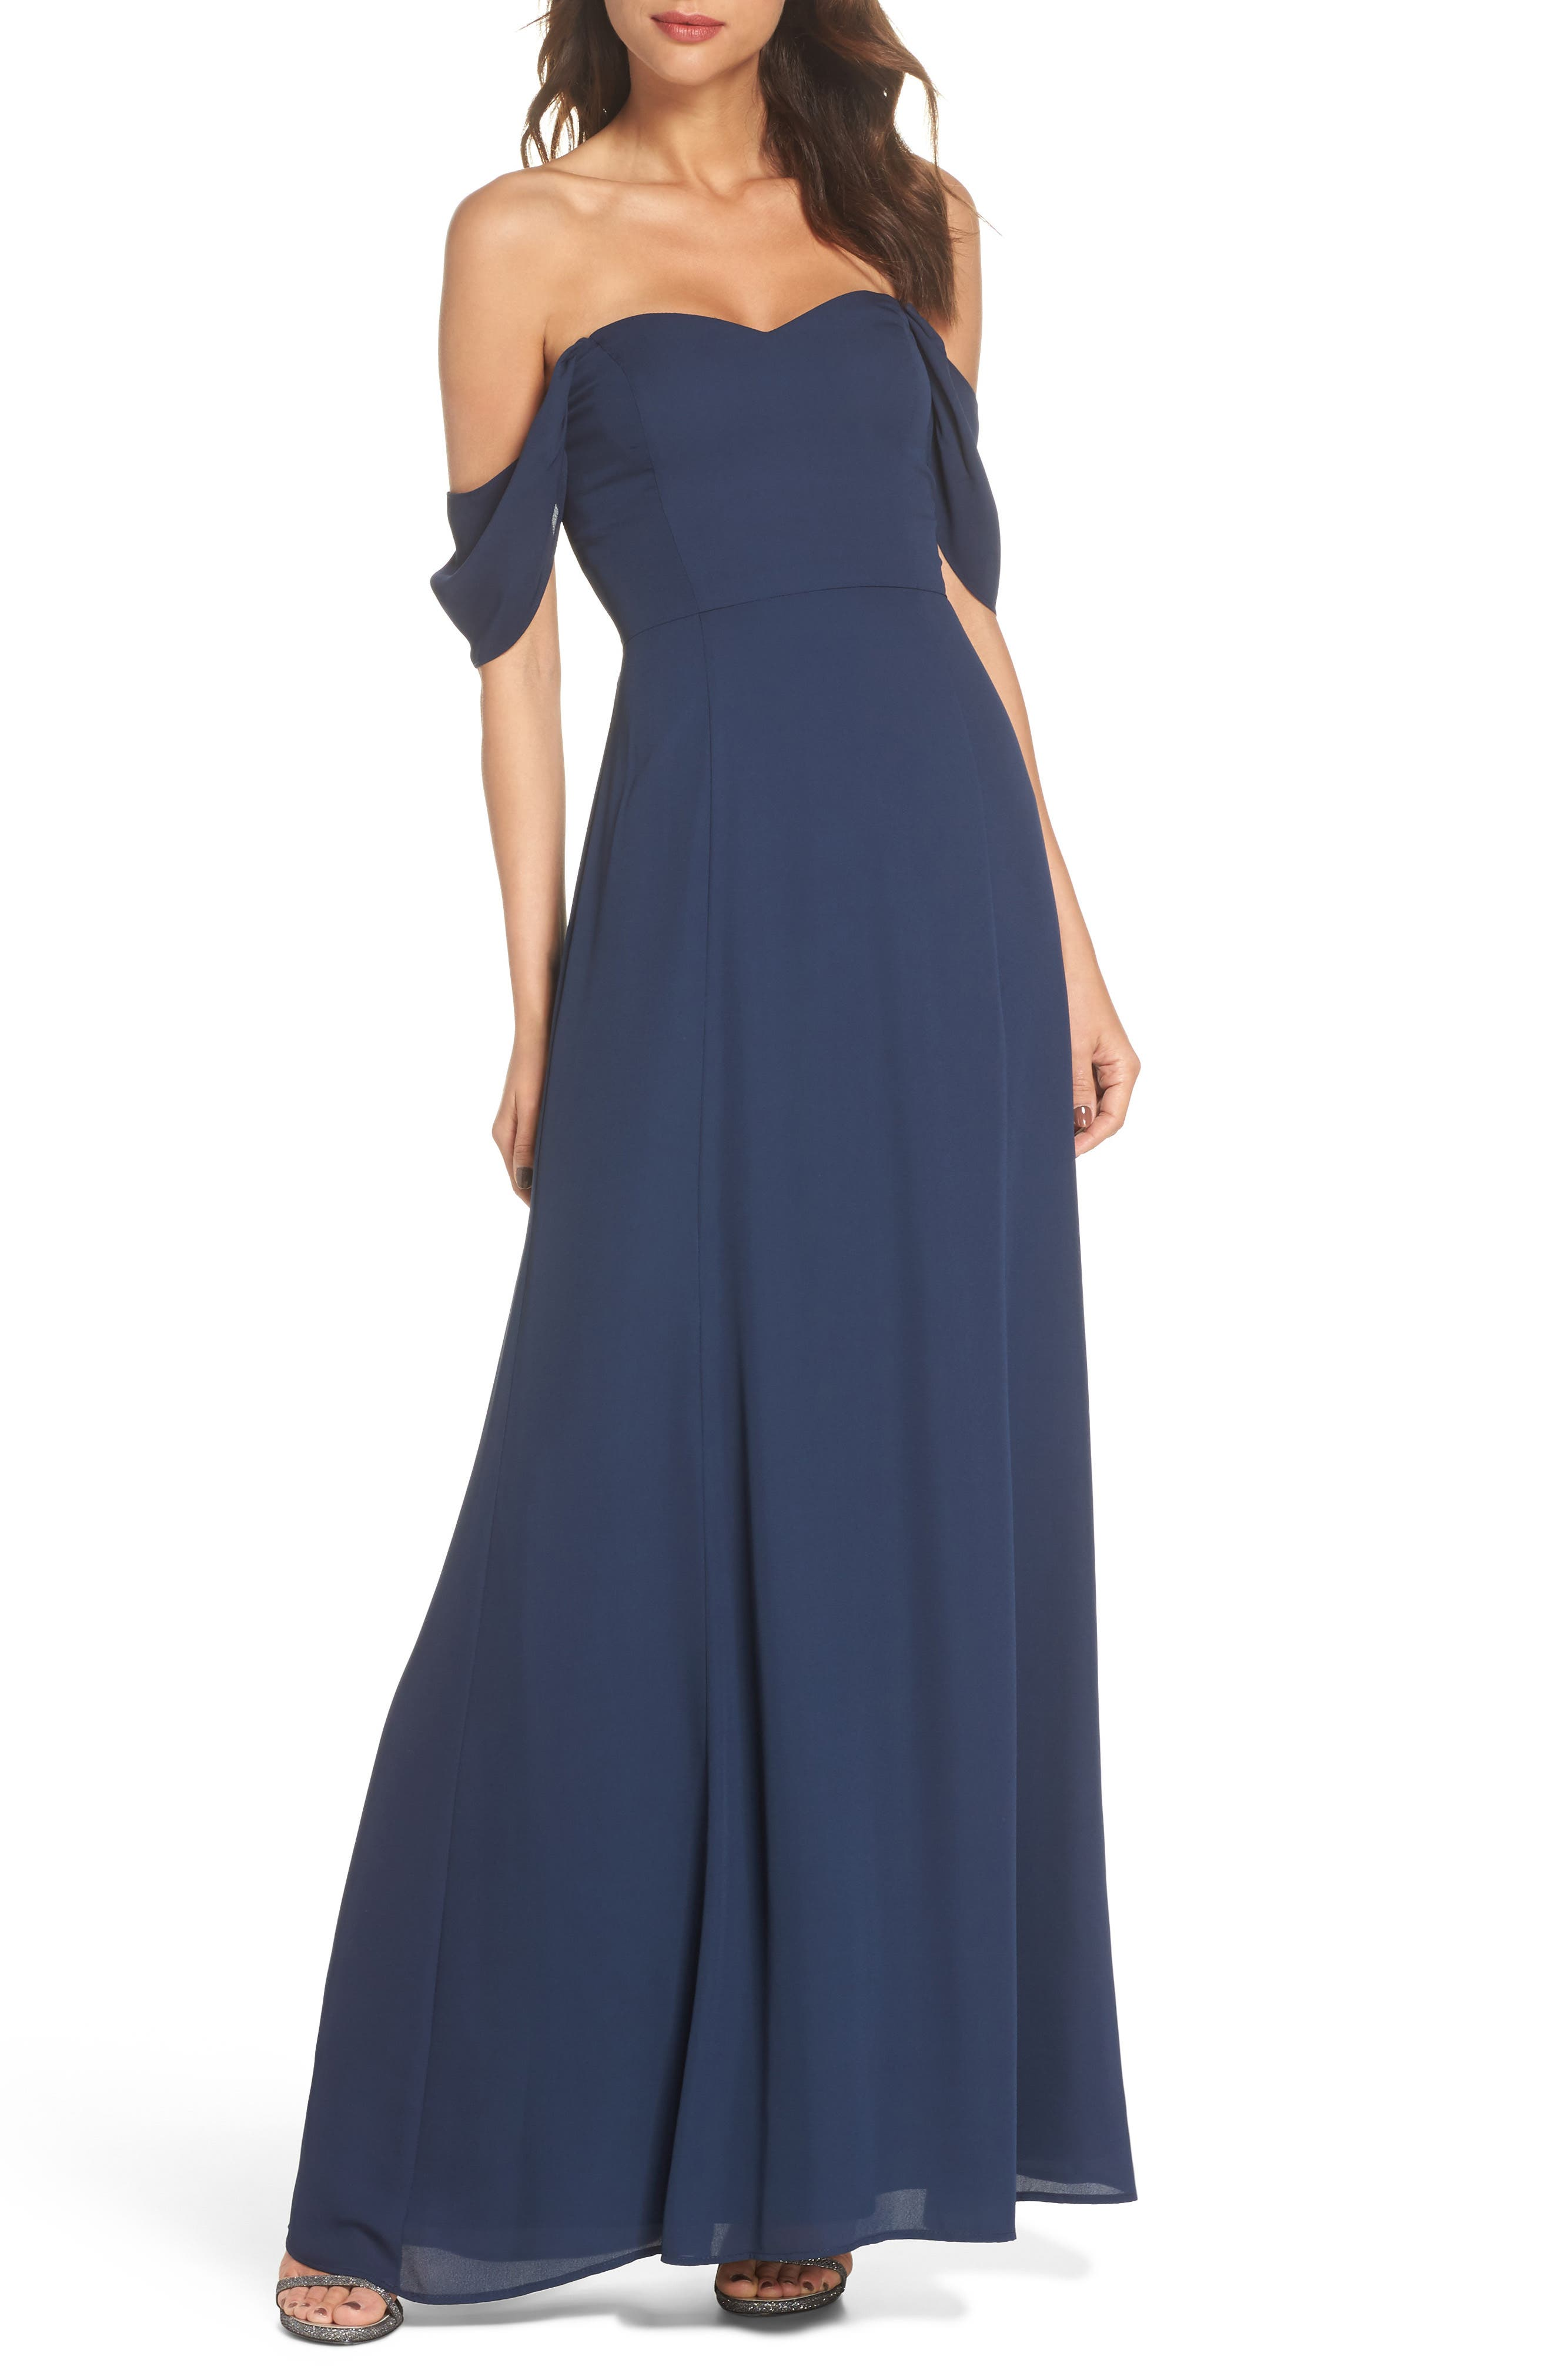 Rachel Off the Shoulder Gored Maxi Dress,                             Main thumbnail 1, color,                             Navy